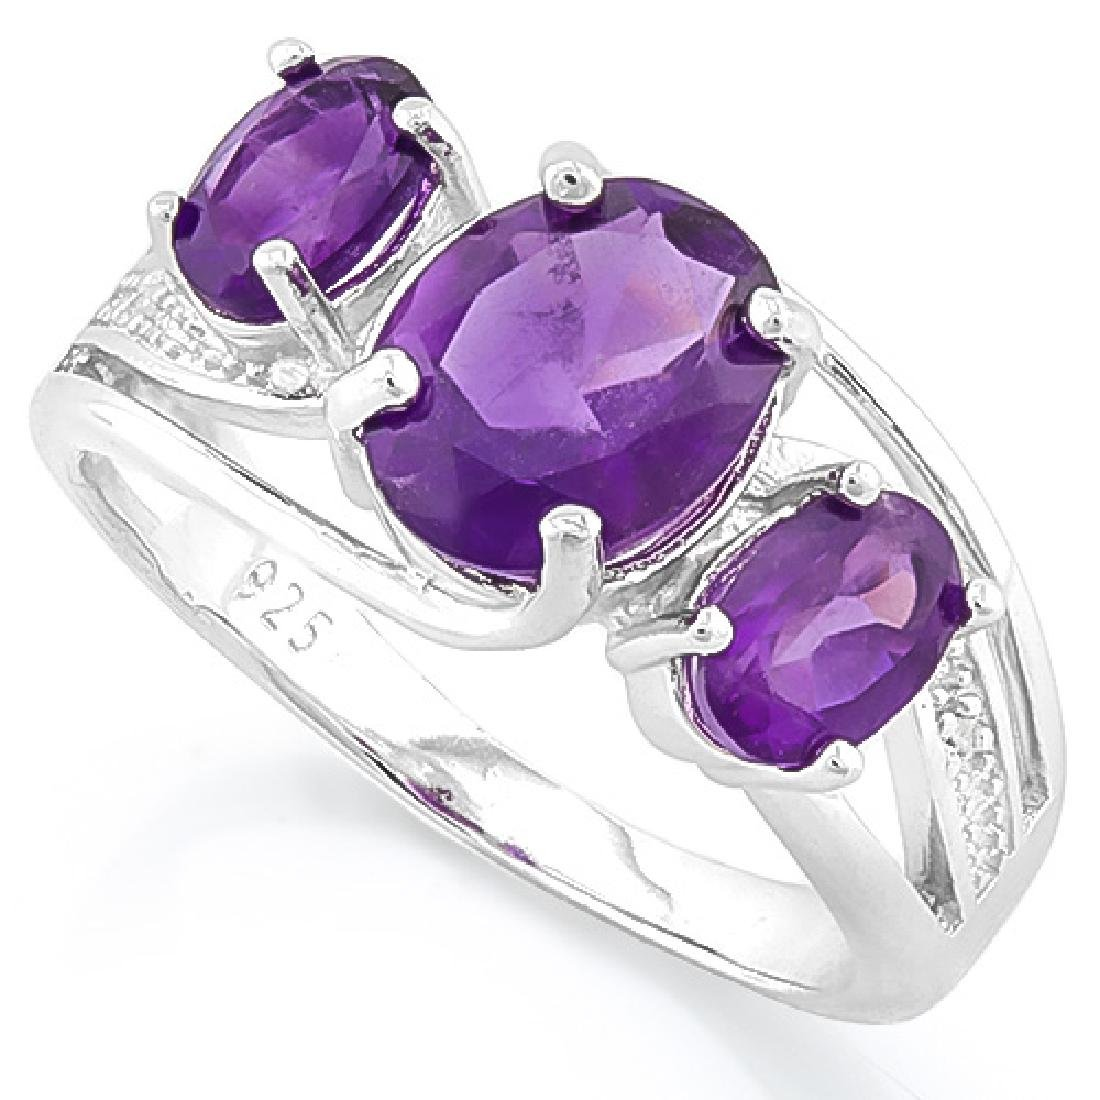 ELEGANT 925 STERLING SILVER RING WITH AMETHYST